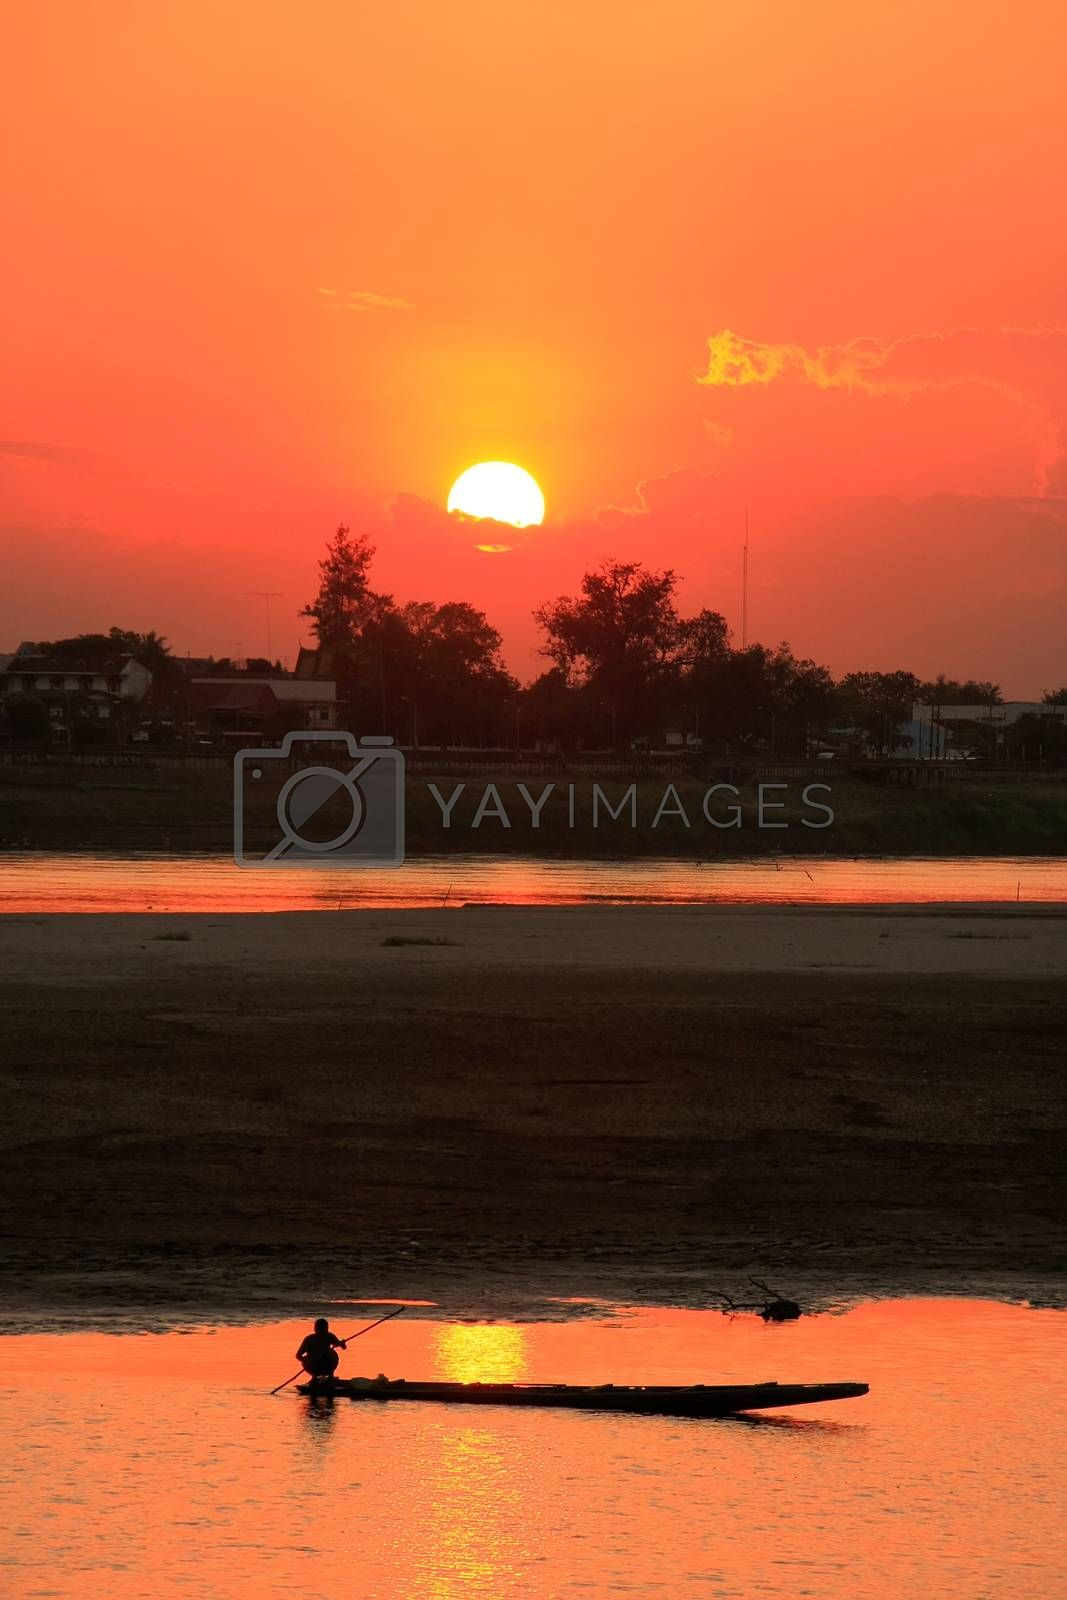 Royalty free image of Silhouetted boat on Mekong river at sunset, Vientiane, Laos by donya_nedomam